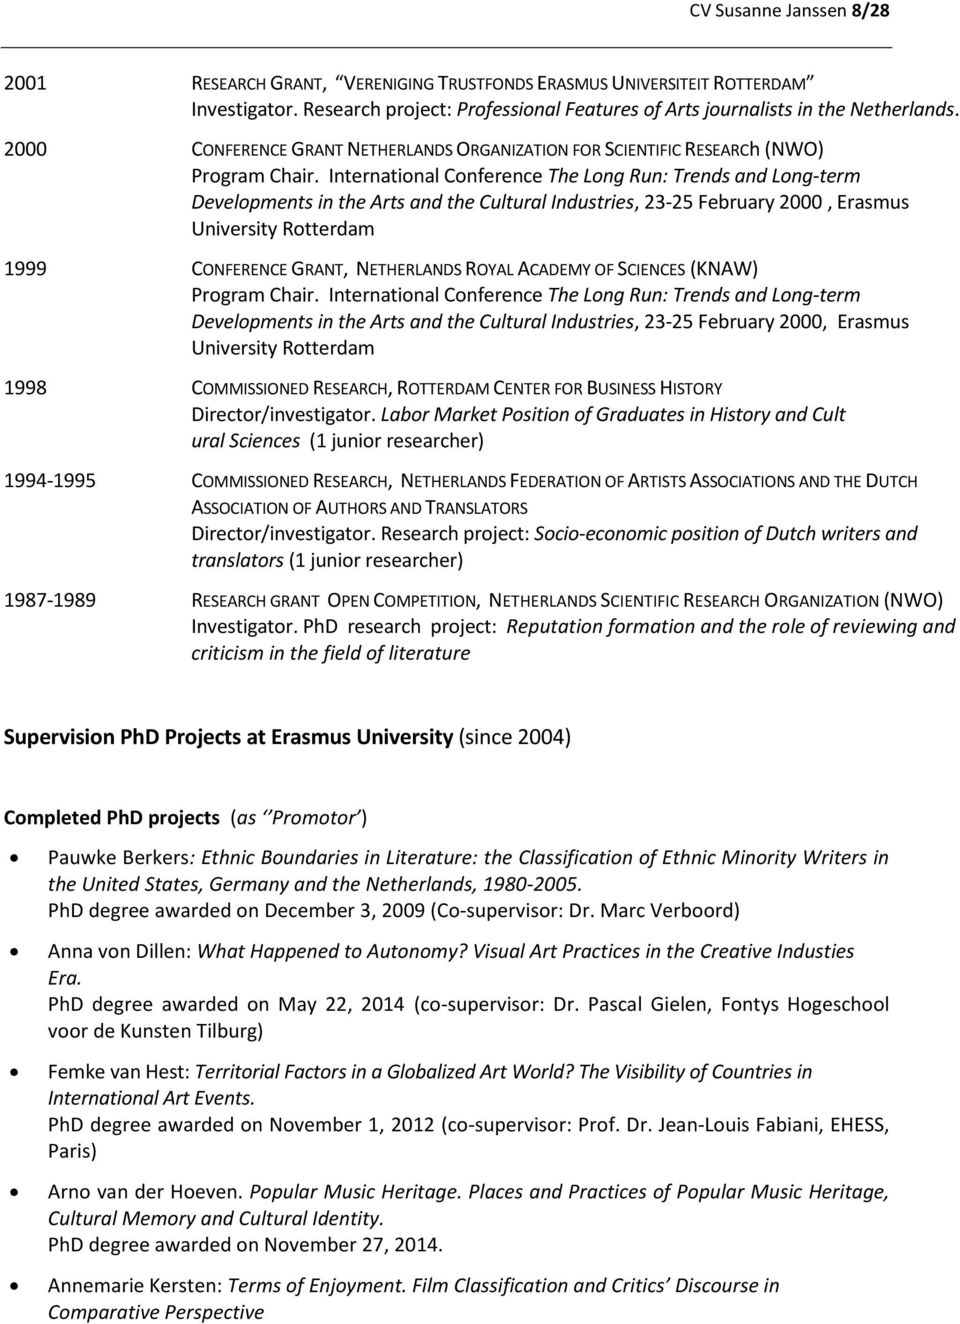 International Conference The Long Run: Trends and Long-term Developments in the Arts and the Cultural Industries, 23-25 February 2000, Erasmus University Rotterdam 1999 CONFERENCE GRANT, NETHERLANDS